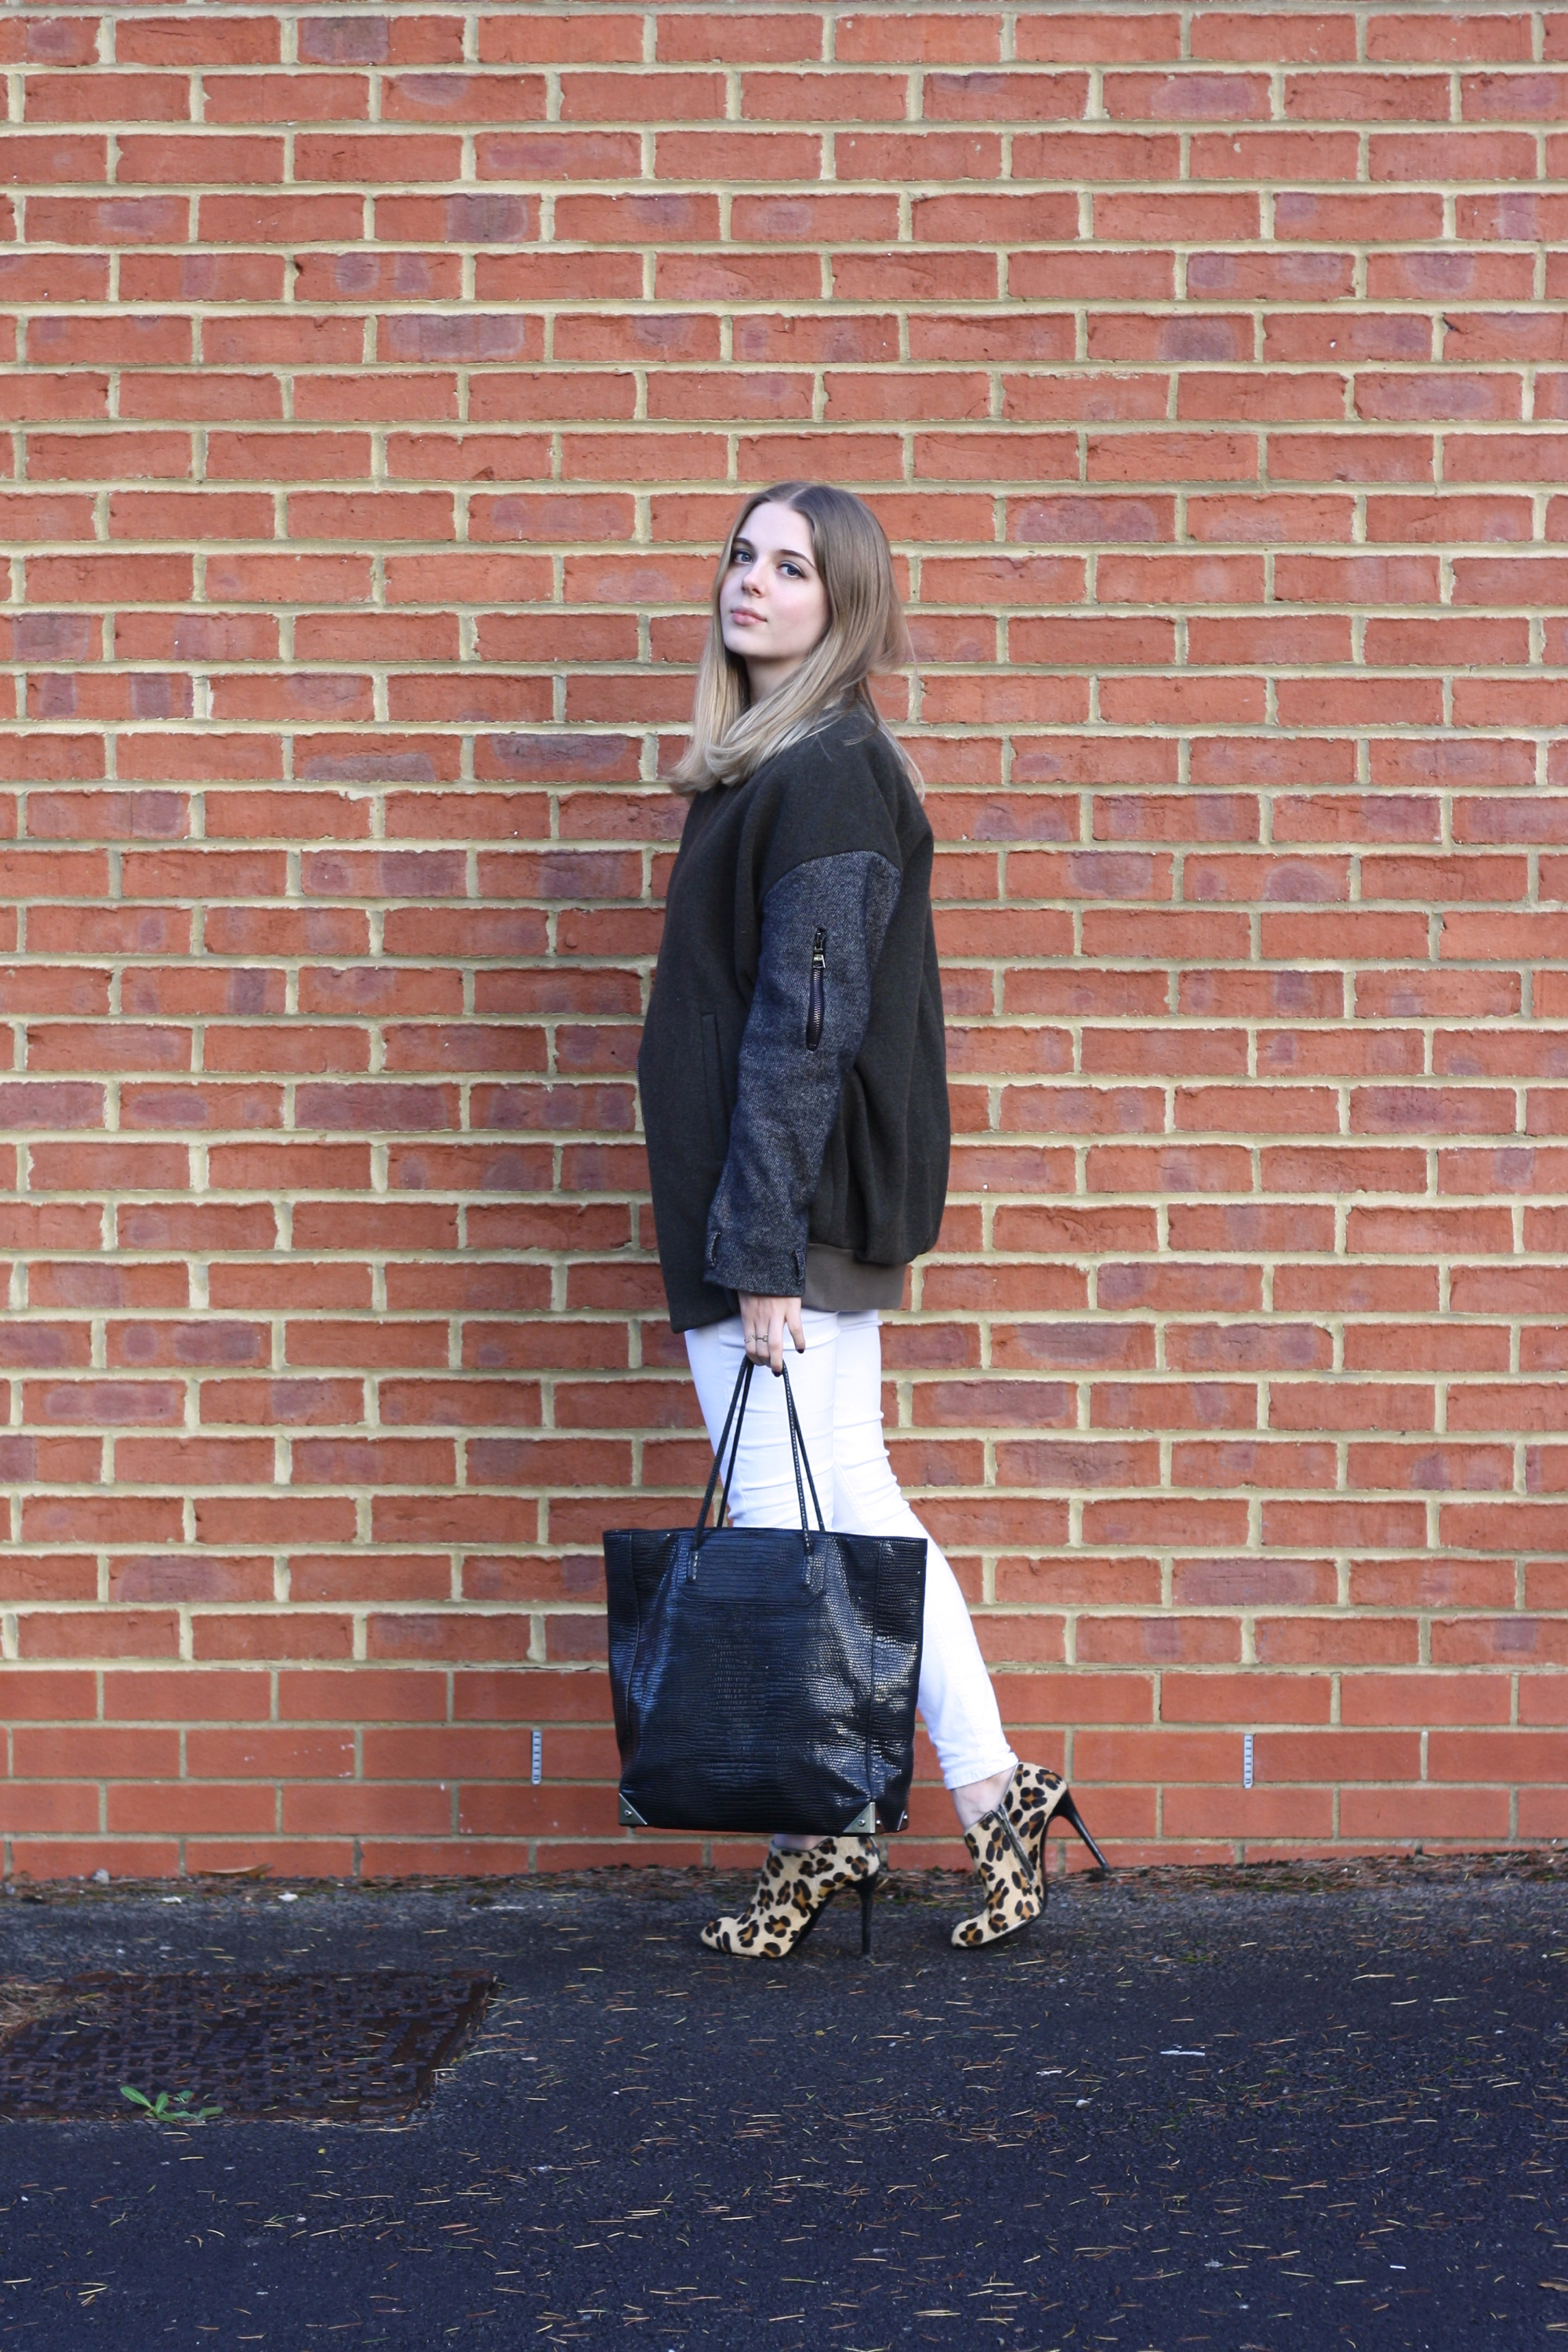 Topshop Unique khaki jacket, Zara leopard ankle boots and Alexander Wang black tote bag